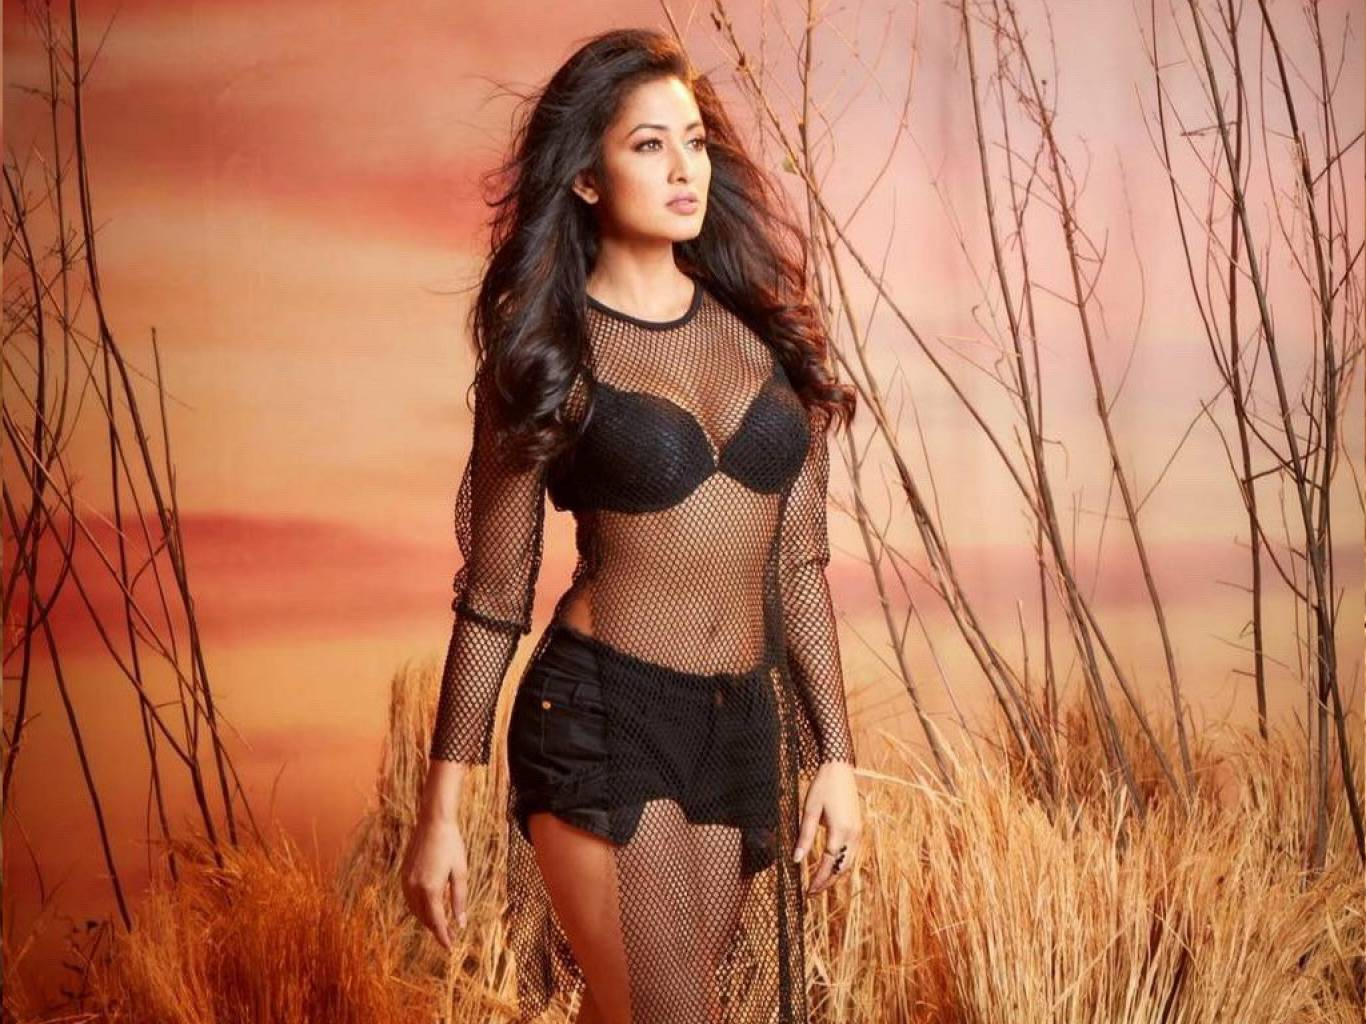 Vidisha Srivastava Wallpapers